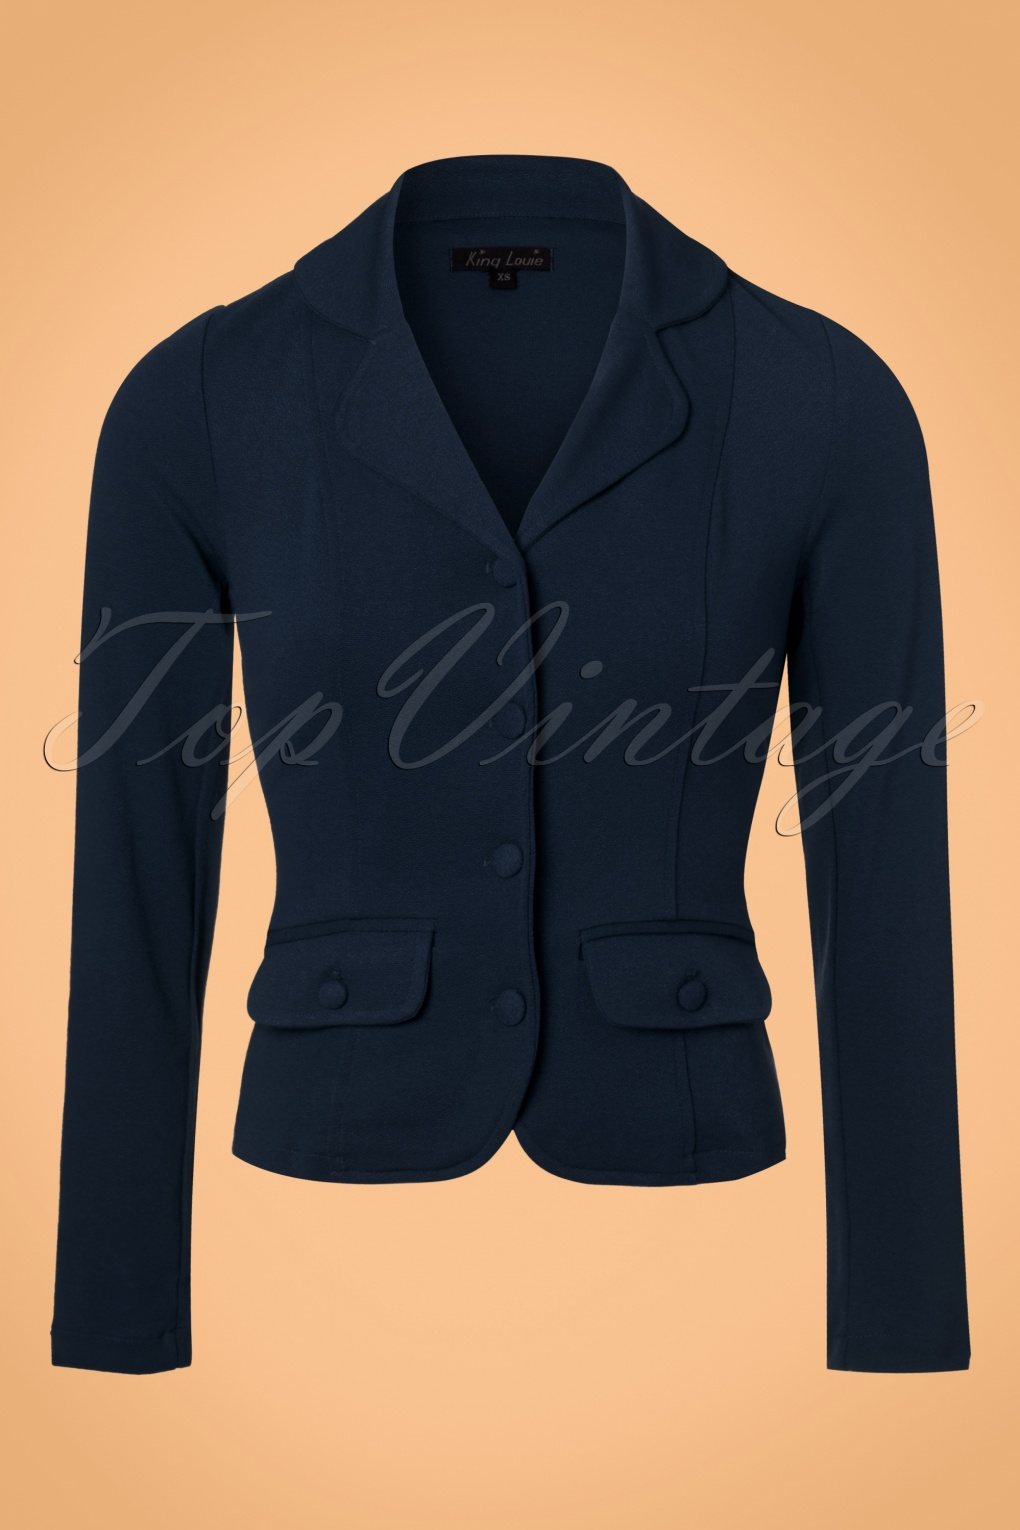 New 1940s Style Coats and Jackets for Sale 40s Milano Crepe Blazer Jacket in Dark Navy £104.23 AT vintagedancer.com